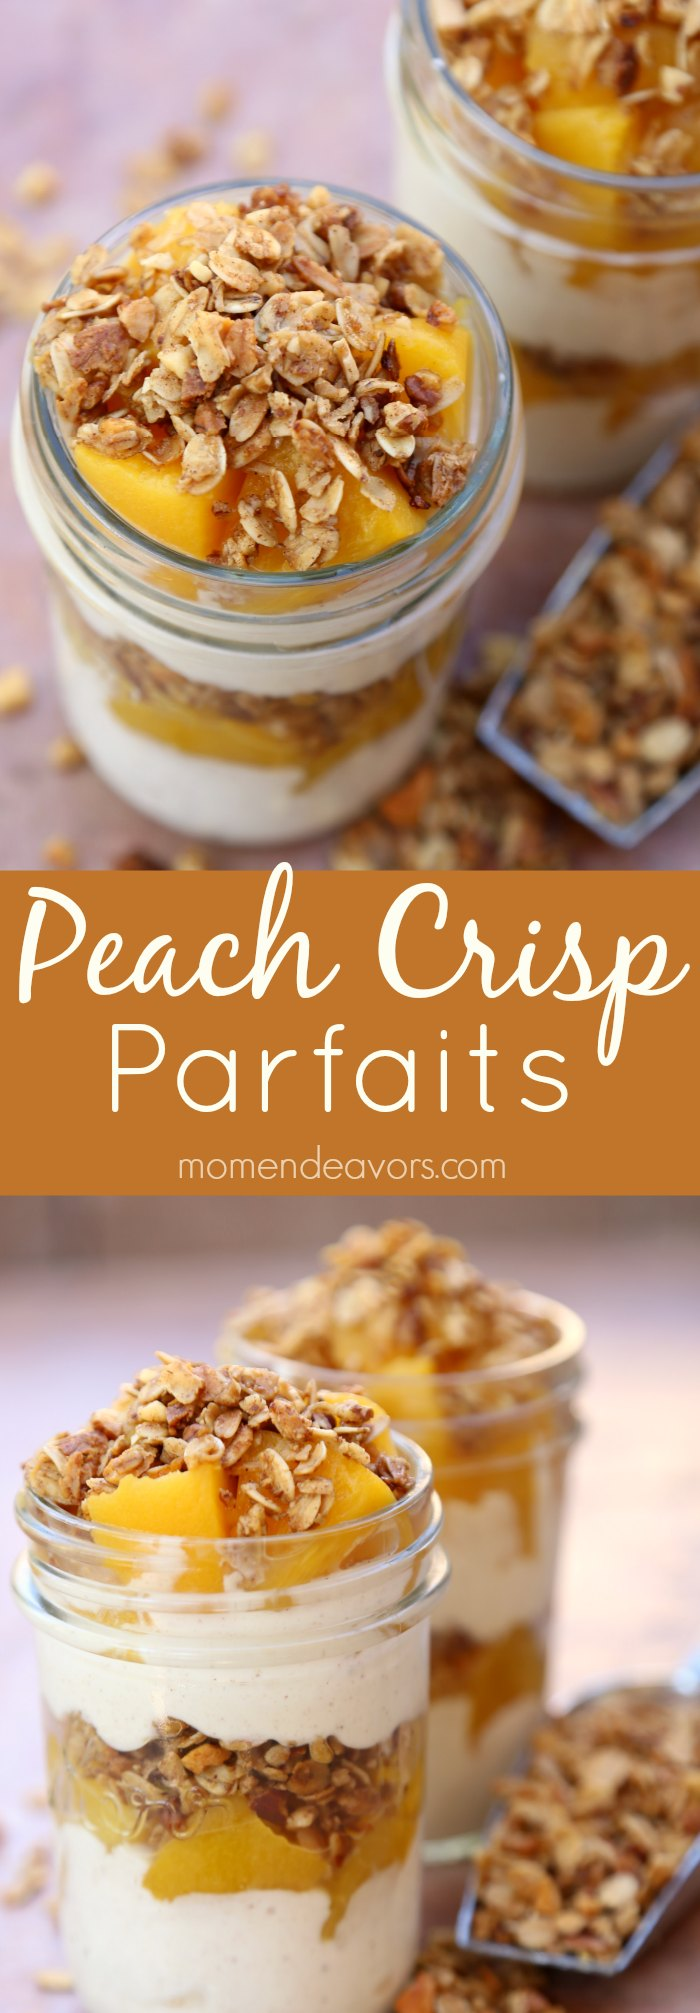 Easy Peach Crisp Parfaits